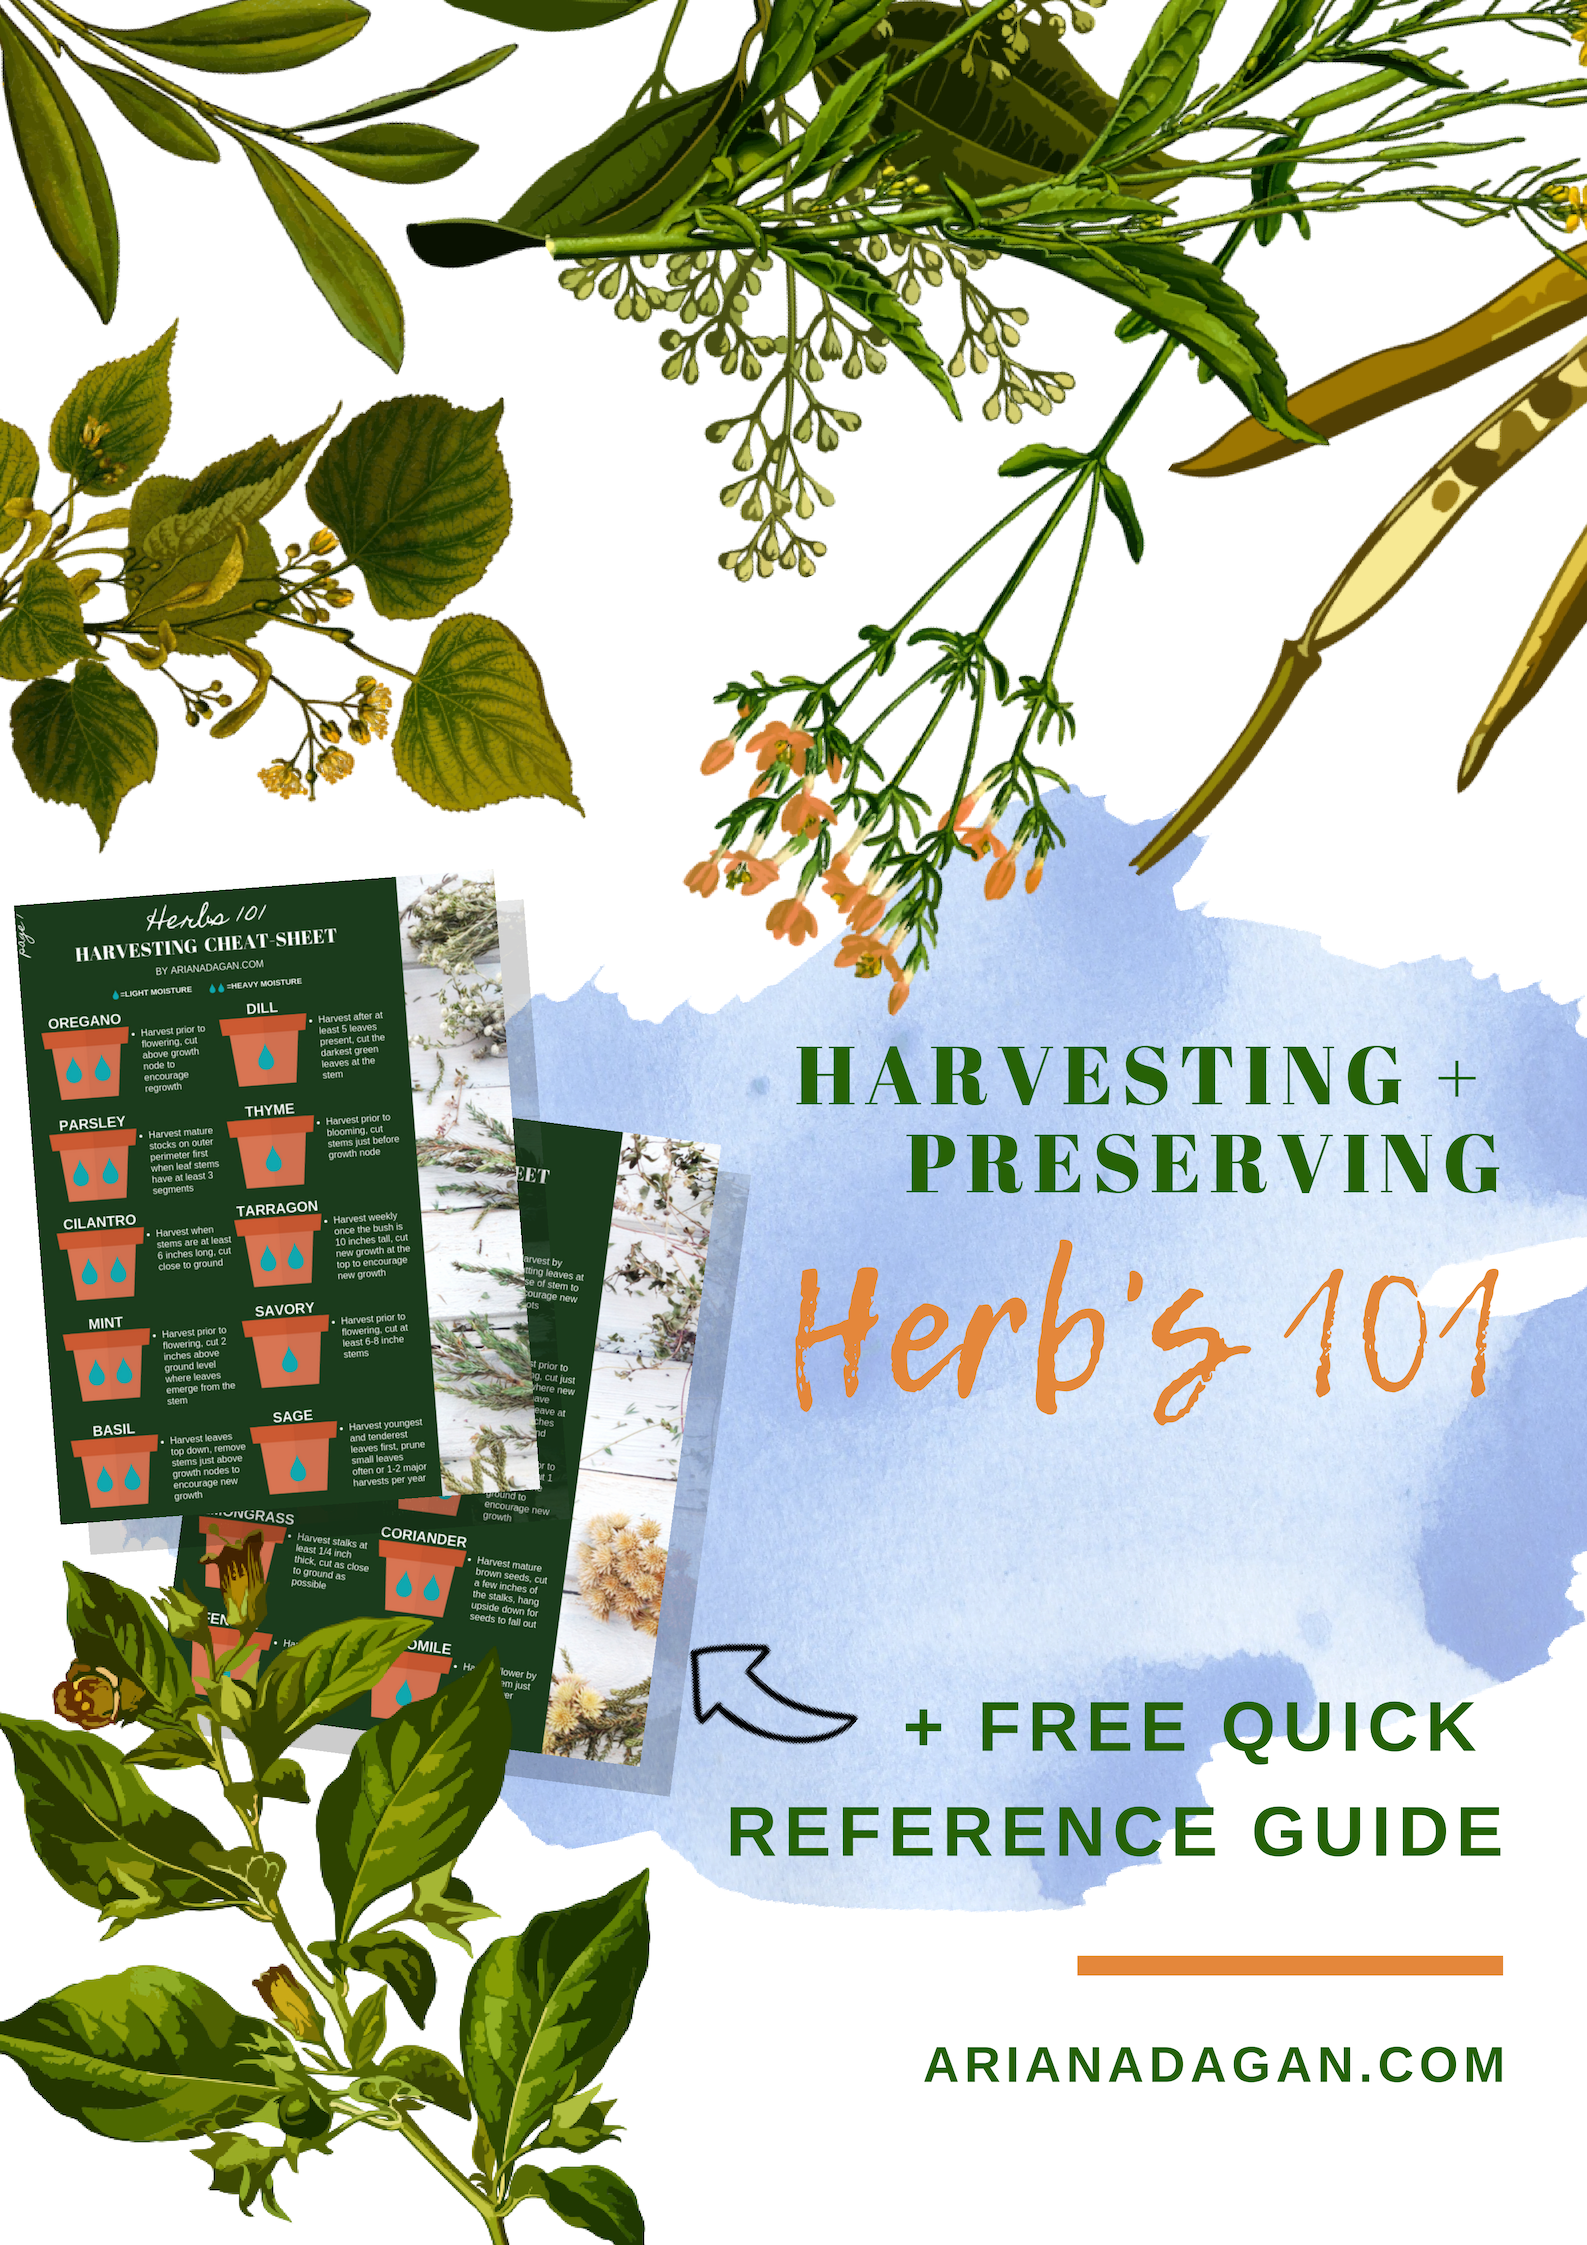 Herbs 101: Harvesting and Preserving + FREE Quick Reference Printable!